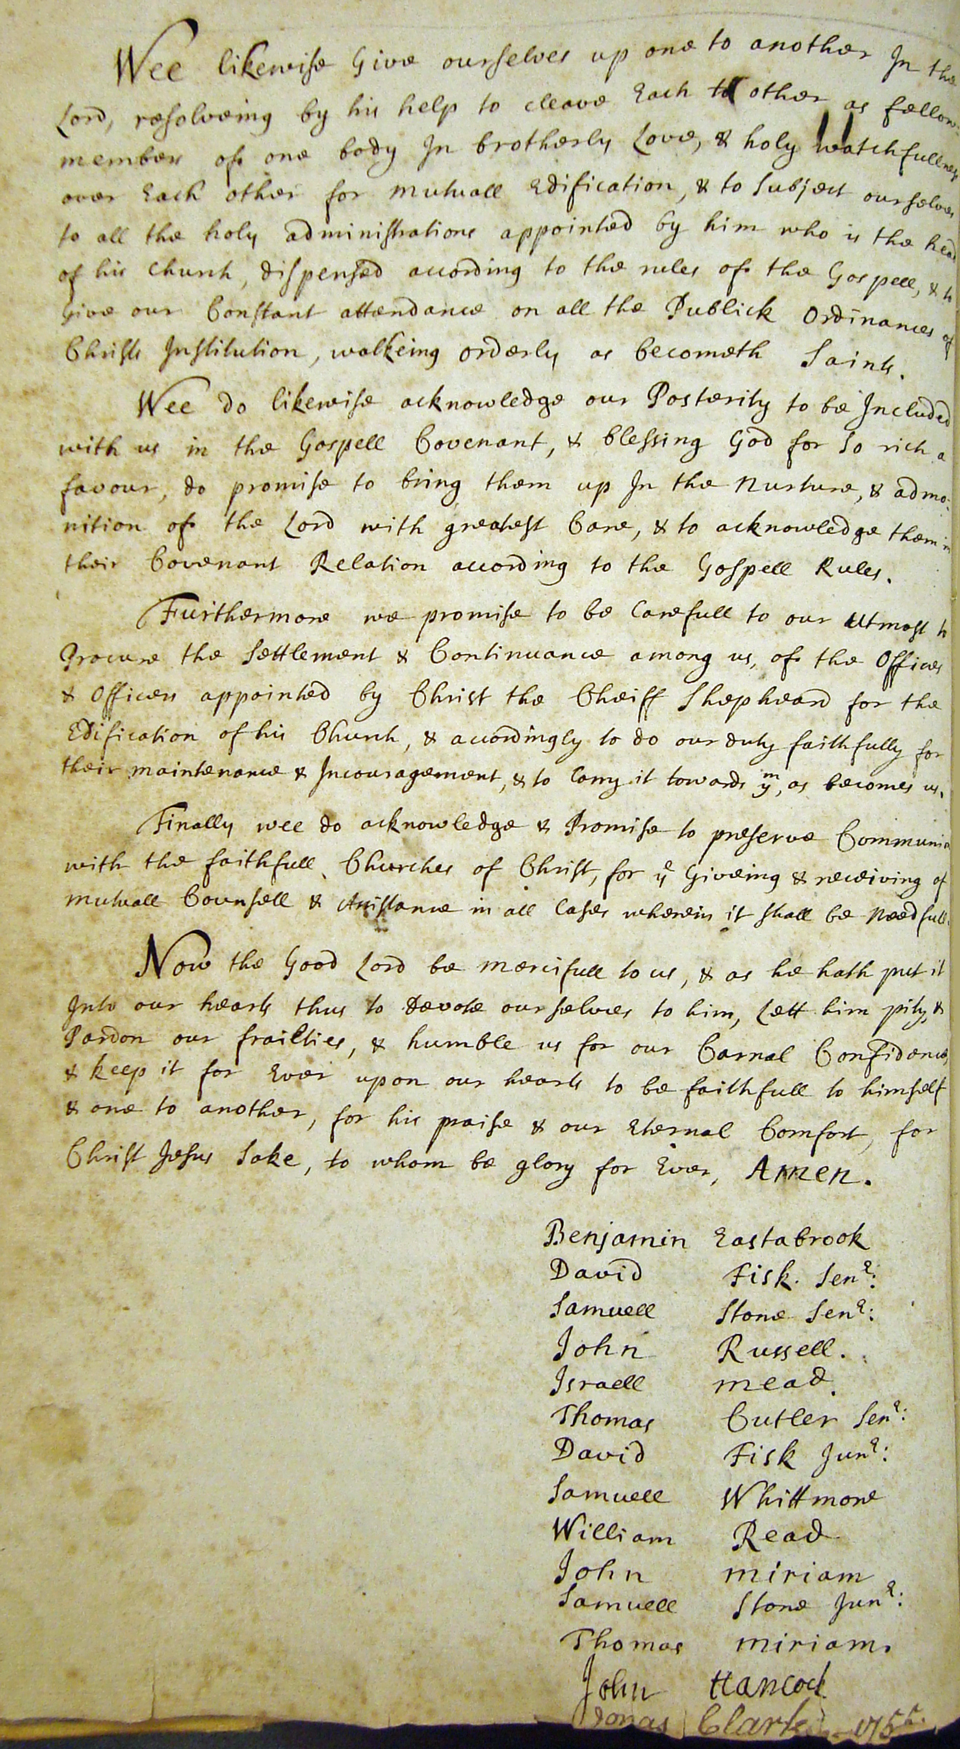 1696 Parish Covenant, page 2 (courtesy of the Lexington Historical Society)